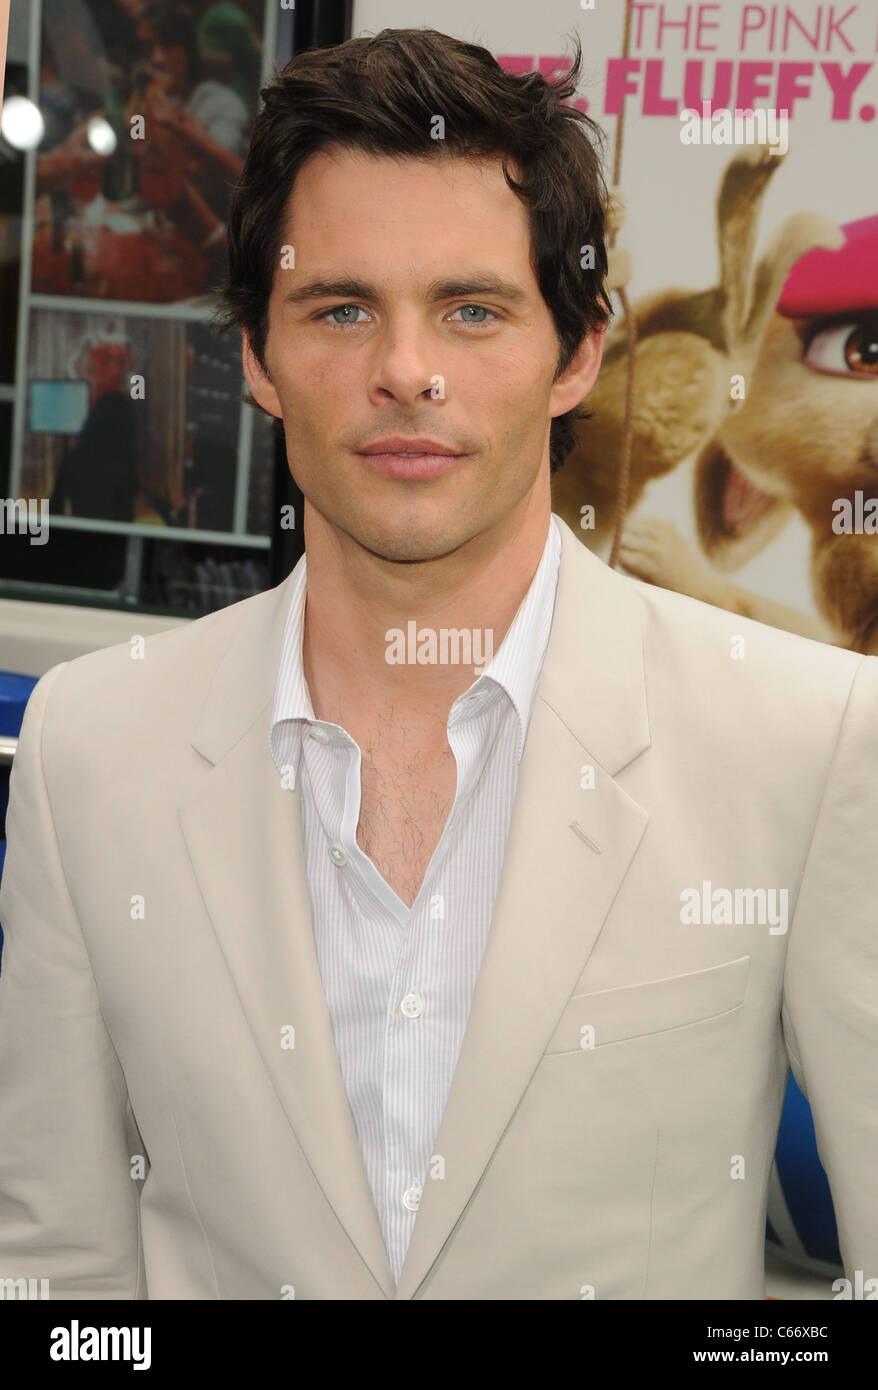 James Marsden at arrivals for HOP Premiere, Universal CityWalk, Los Angeles, CA March 27, 2011. Photo By: Dee Cercone/Everett Stock Photo